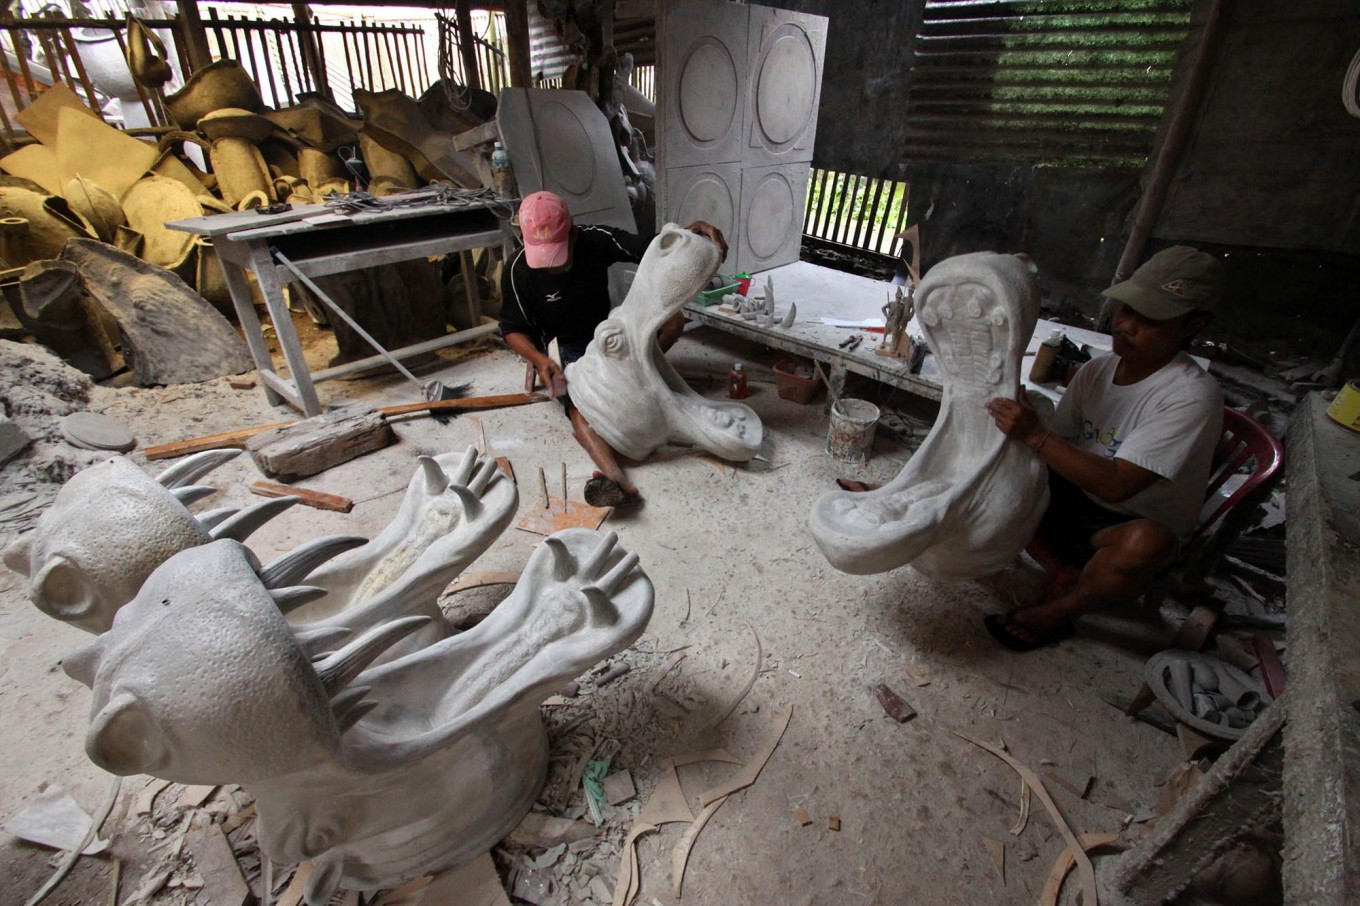 A man uses sandpaper to smooth a cement sculpture after molding it in Patuk village, Gunungkidul, Yogyakarta, on Feb. 21. JP/Aditya Sagita